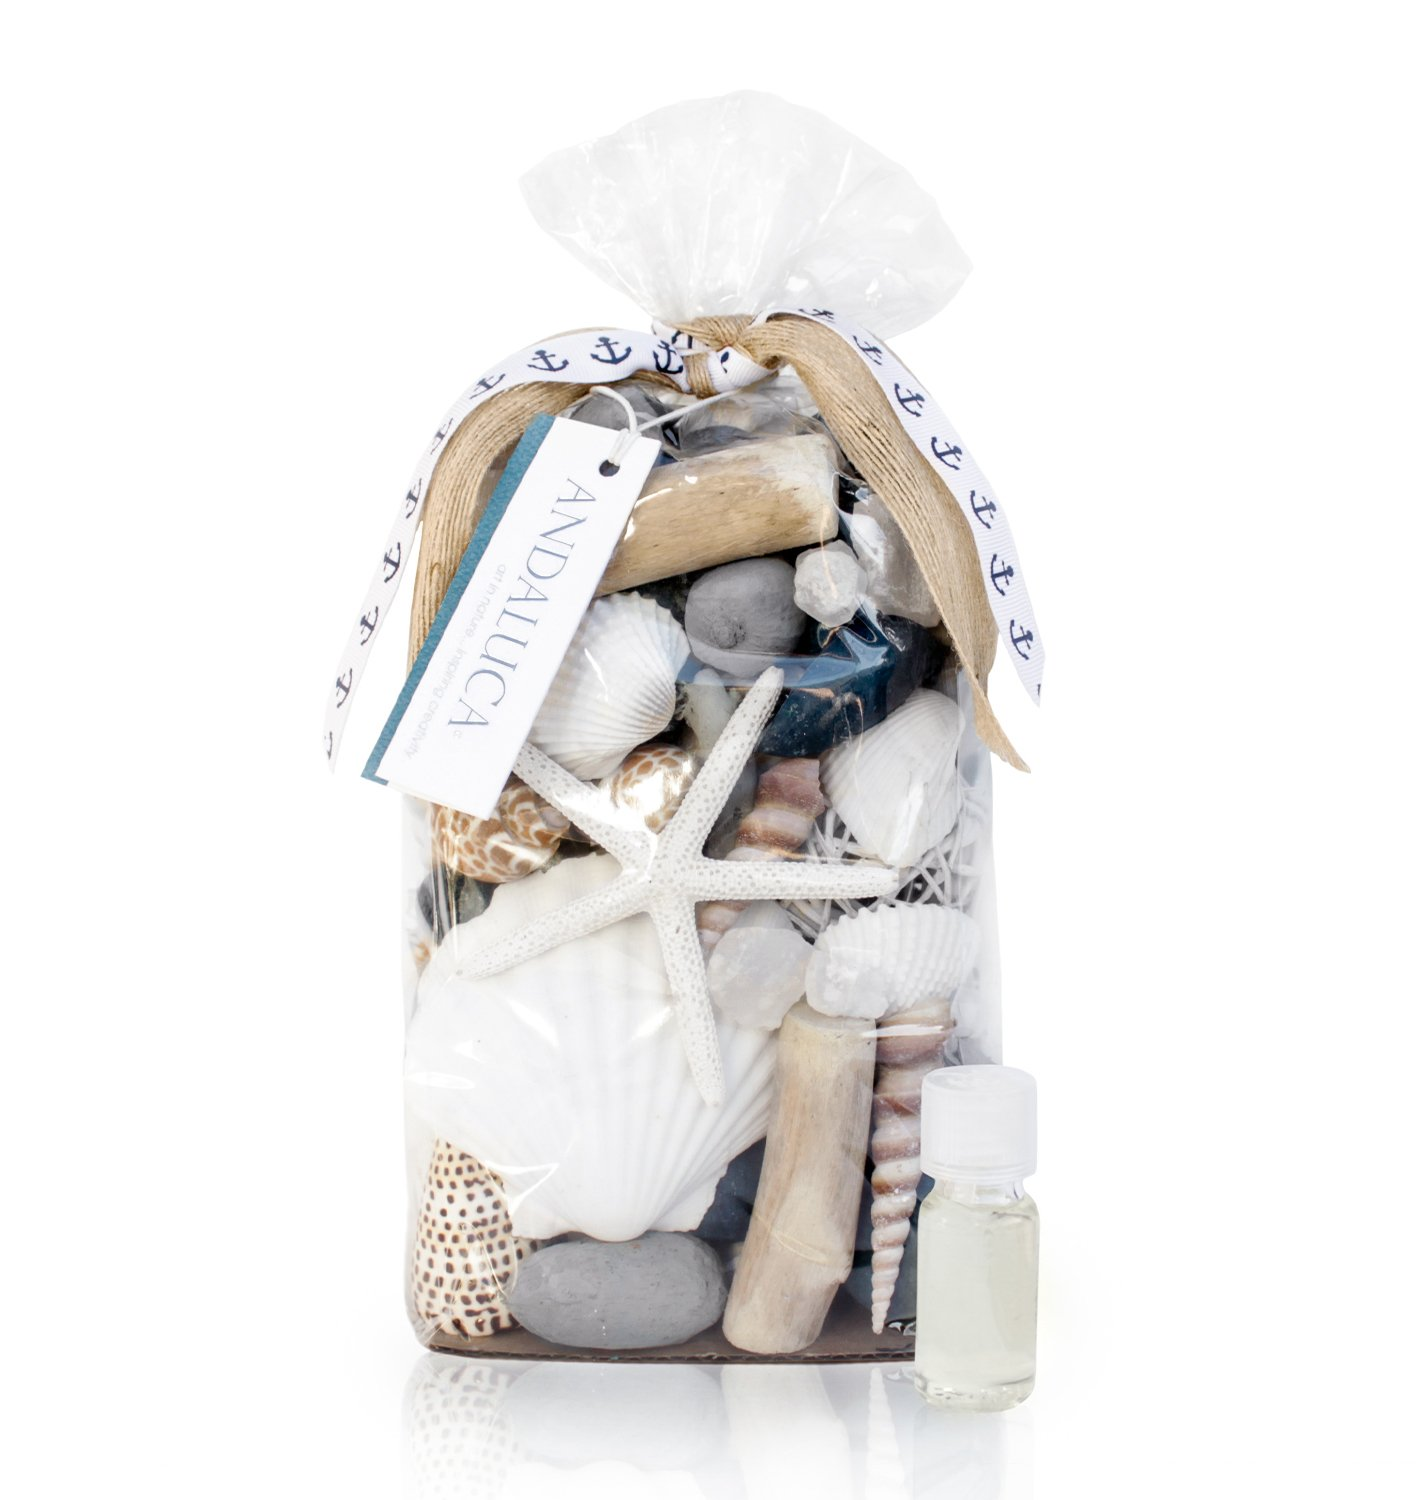 Andaluca Pacific Vanilla Isles Scented Potpourri   Made in California   Large 20 oz Bag + Fragrance Vial   Scents of Vanilla, Sandalwood and Coconut Blooms